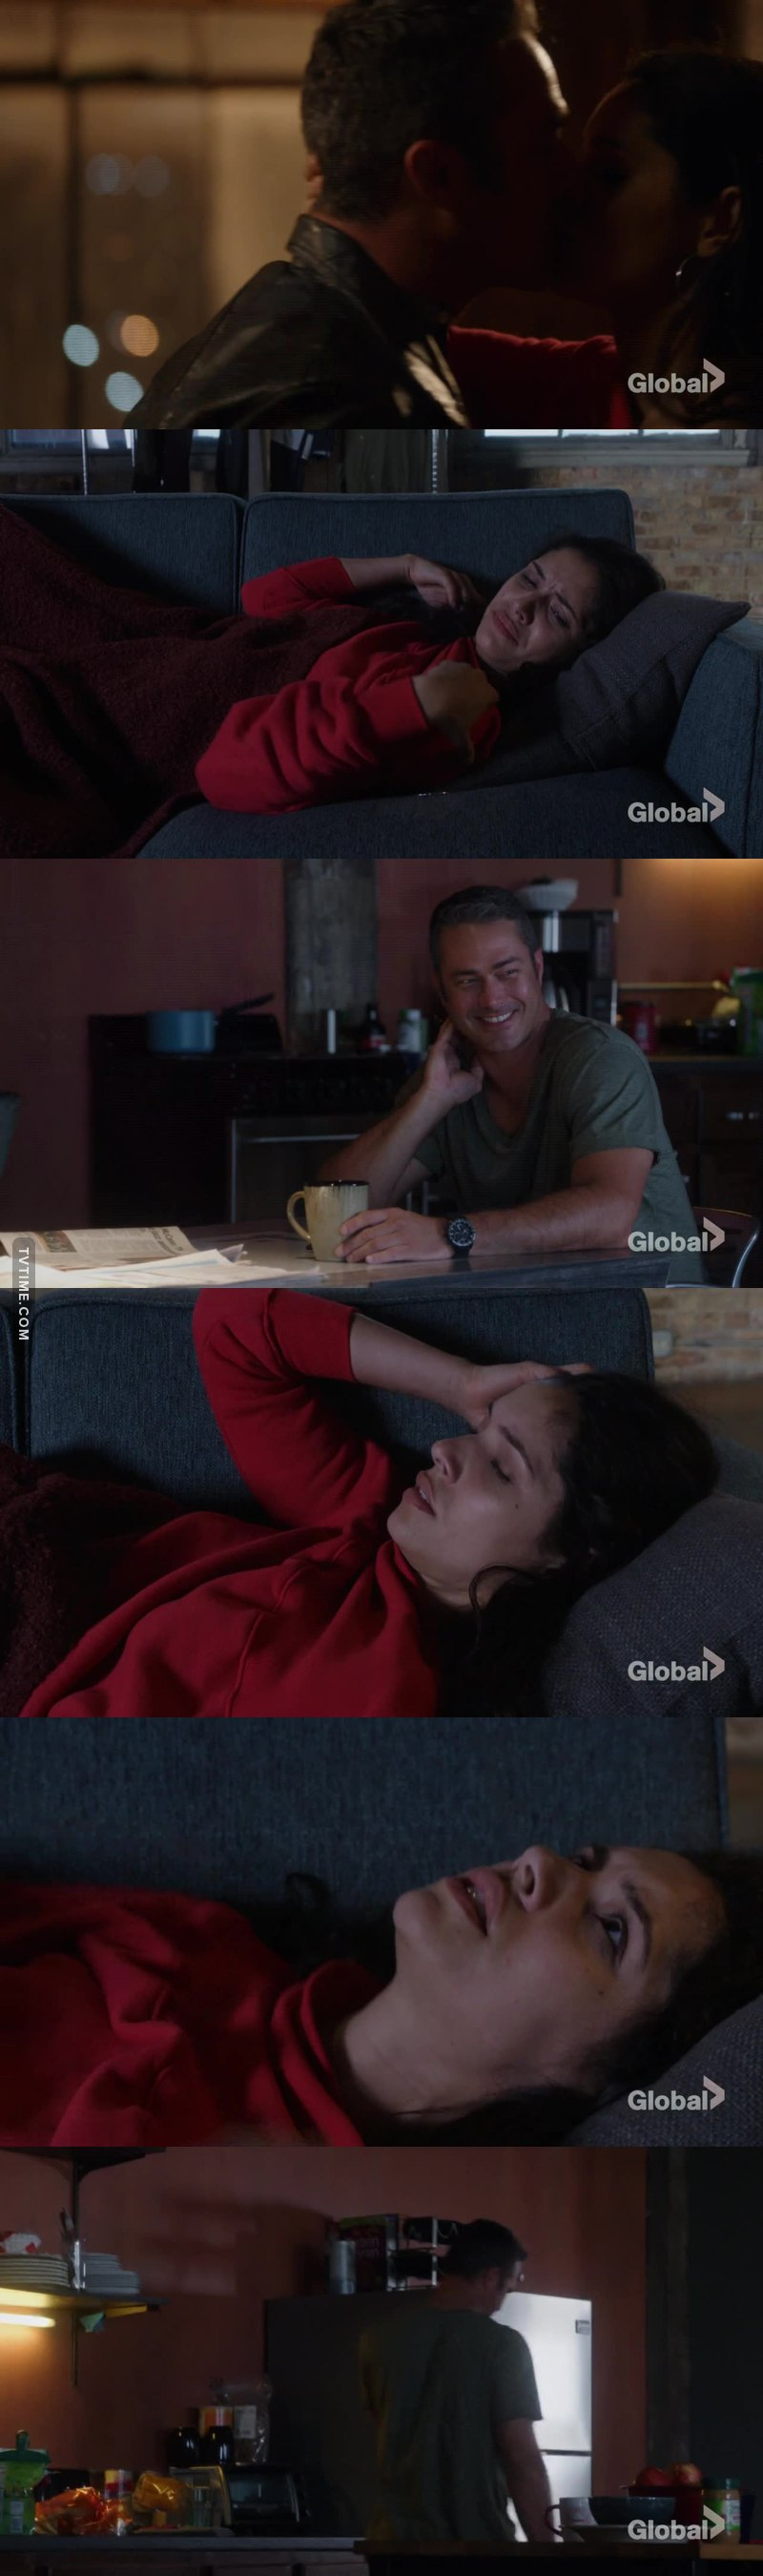 Severide you're a really awesome person not taking advantage of Stella while she was drunk. High five👋🤗🖤